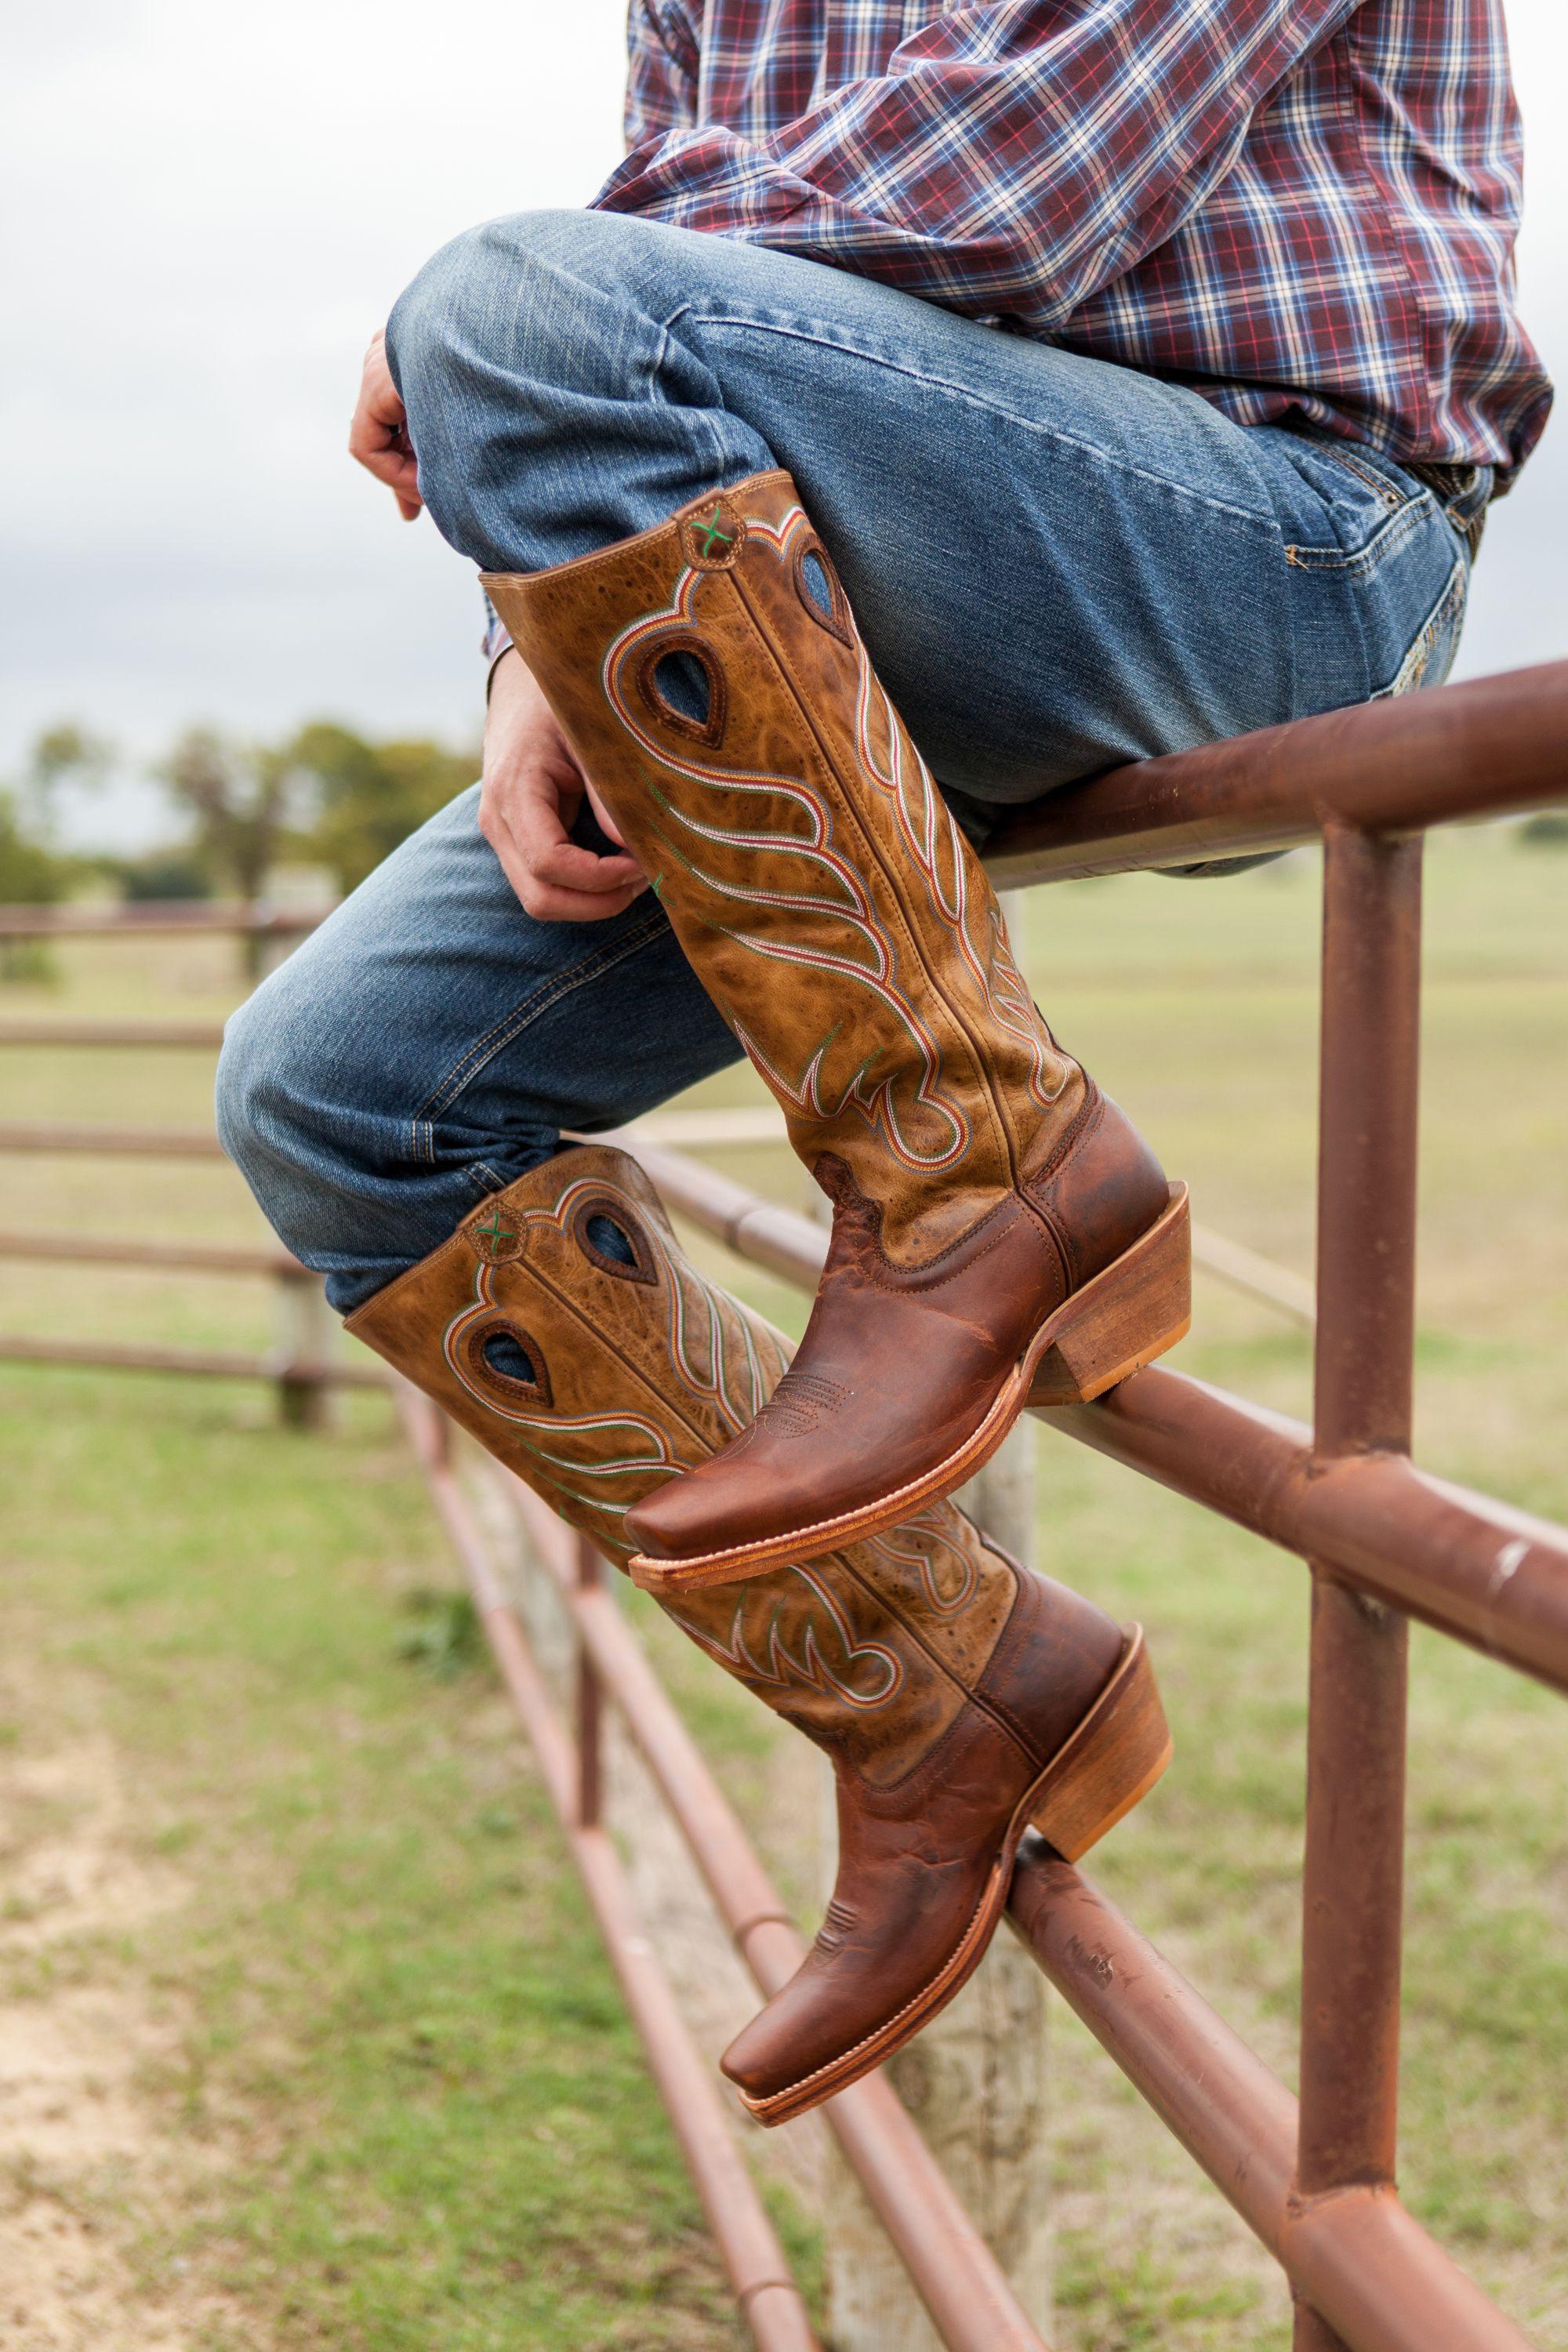 bcac4f26dfb Buckaroo boots by Twisted X! #cowboyboots #cowboys #country For more ...